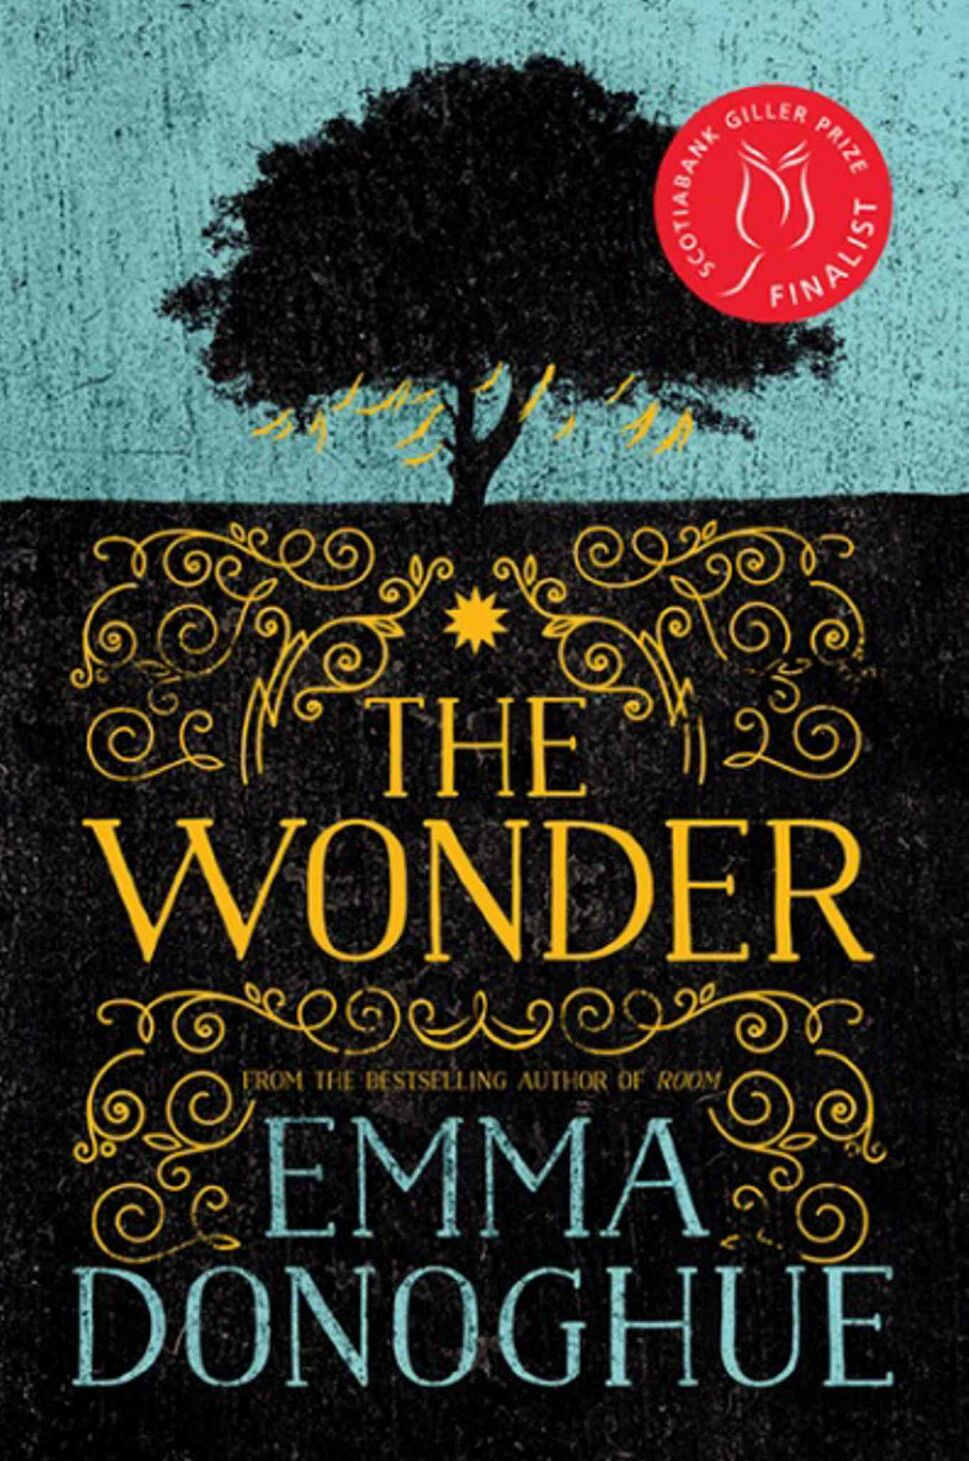 <h3>The Wonder</h3> <br/> By Emma Donoghue <br/> <strong>Donoghue, best known for her novel Room, sets her latest novel in a claustrophobic 19th-century Irish setting. When a young girl seems to survive without eating, both suspicion and religious fervor is triggered, making for a disturbing inquiry into family, religion and abuse. It's not easy to raise contemporary issues in a past setting without seeming to shoehorn them in. Donoghue succeeds admirably.</strong> <br/> — Ron Robinson